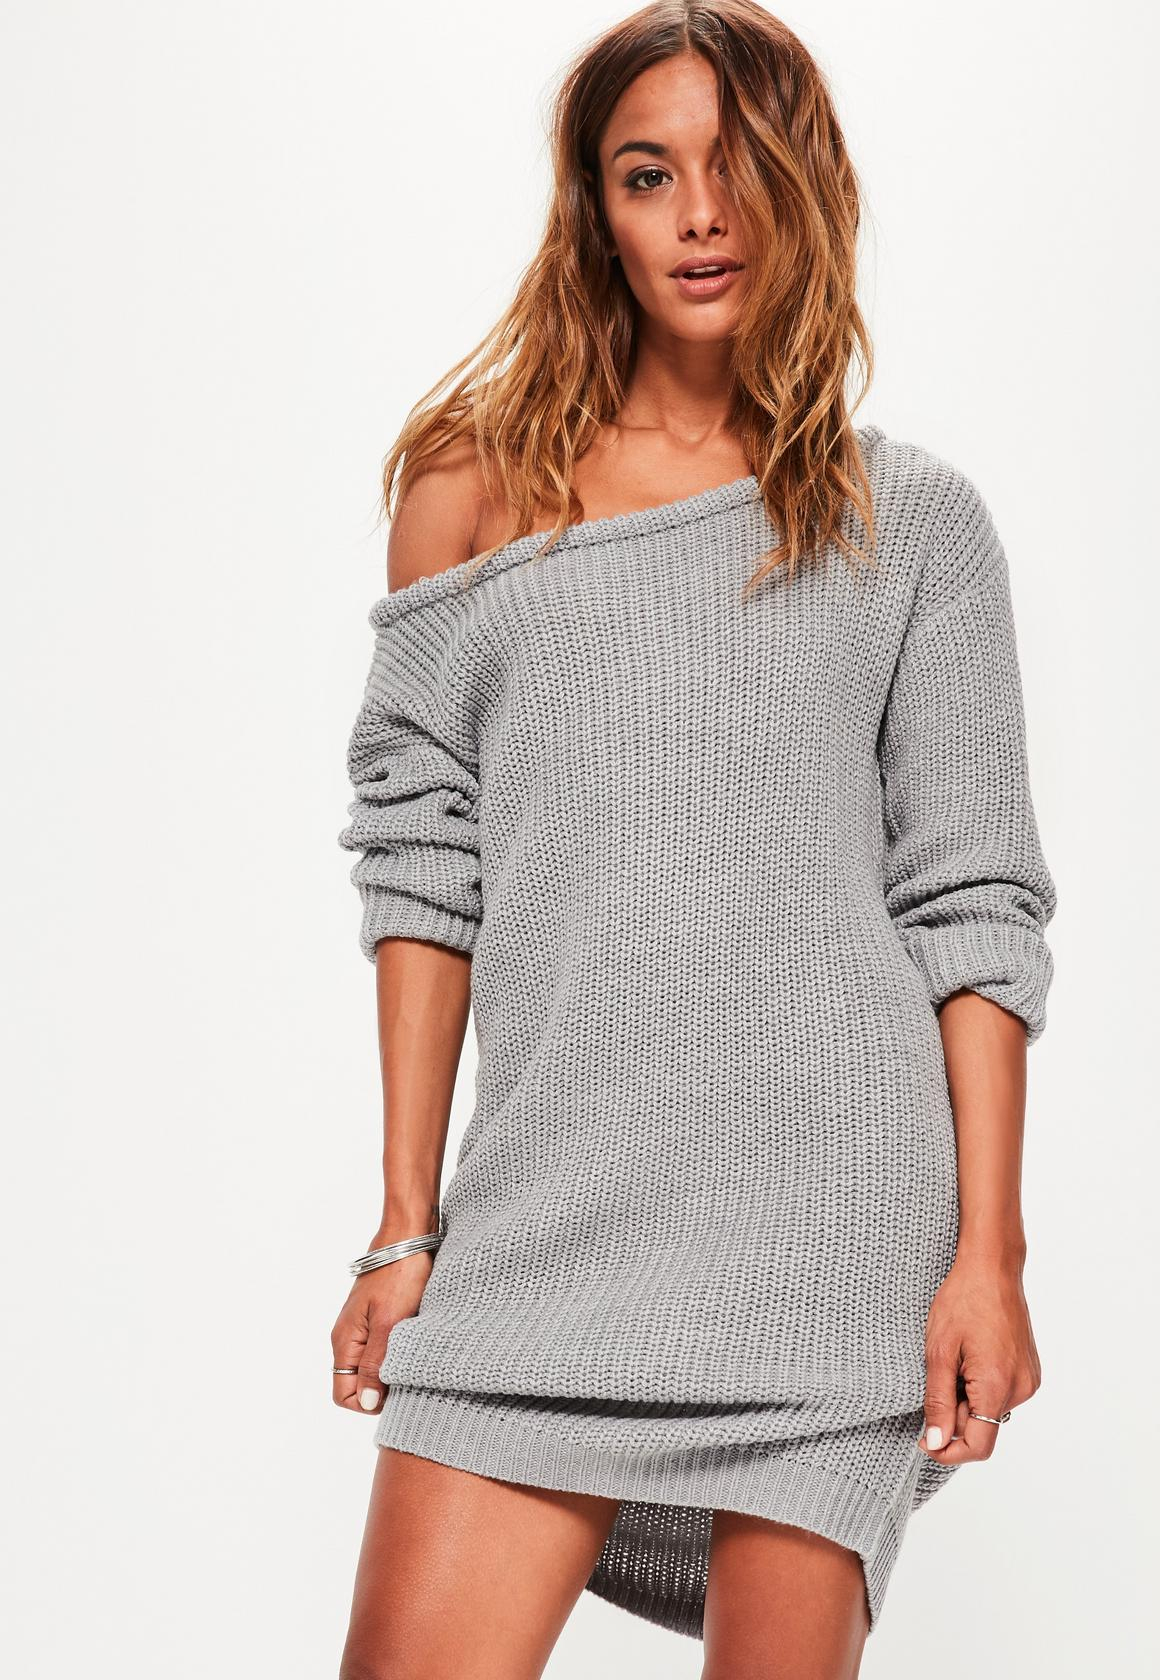 Off The Shoulder Sweater Knitting Pattern Knitted Dress Grey Off Shoulder Knitted Jumper Dress Crochet And